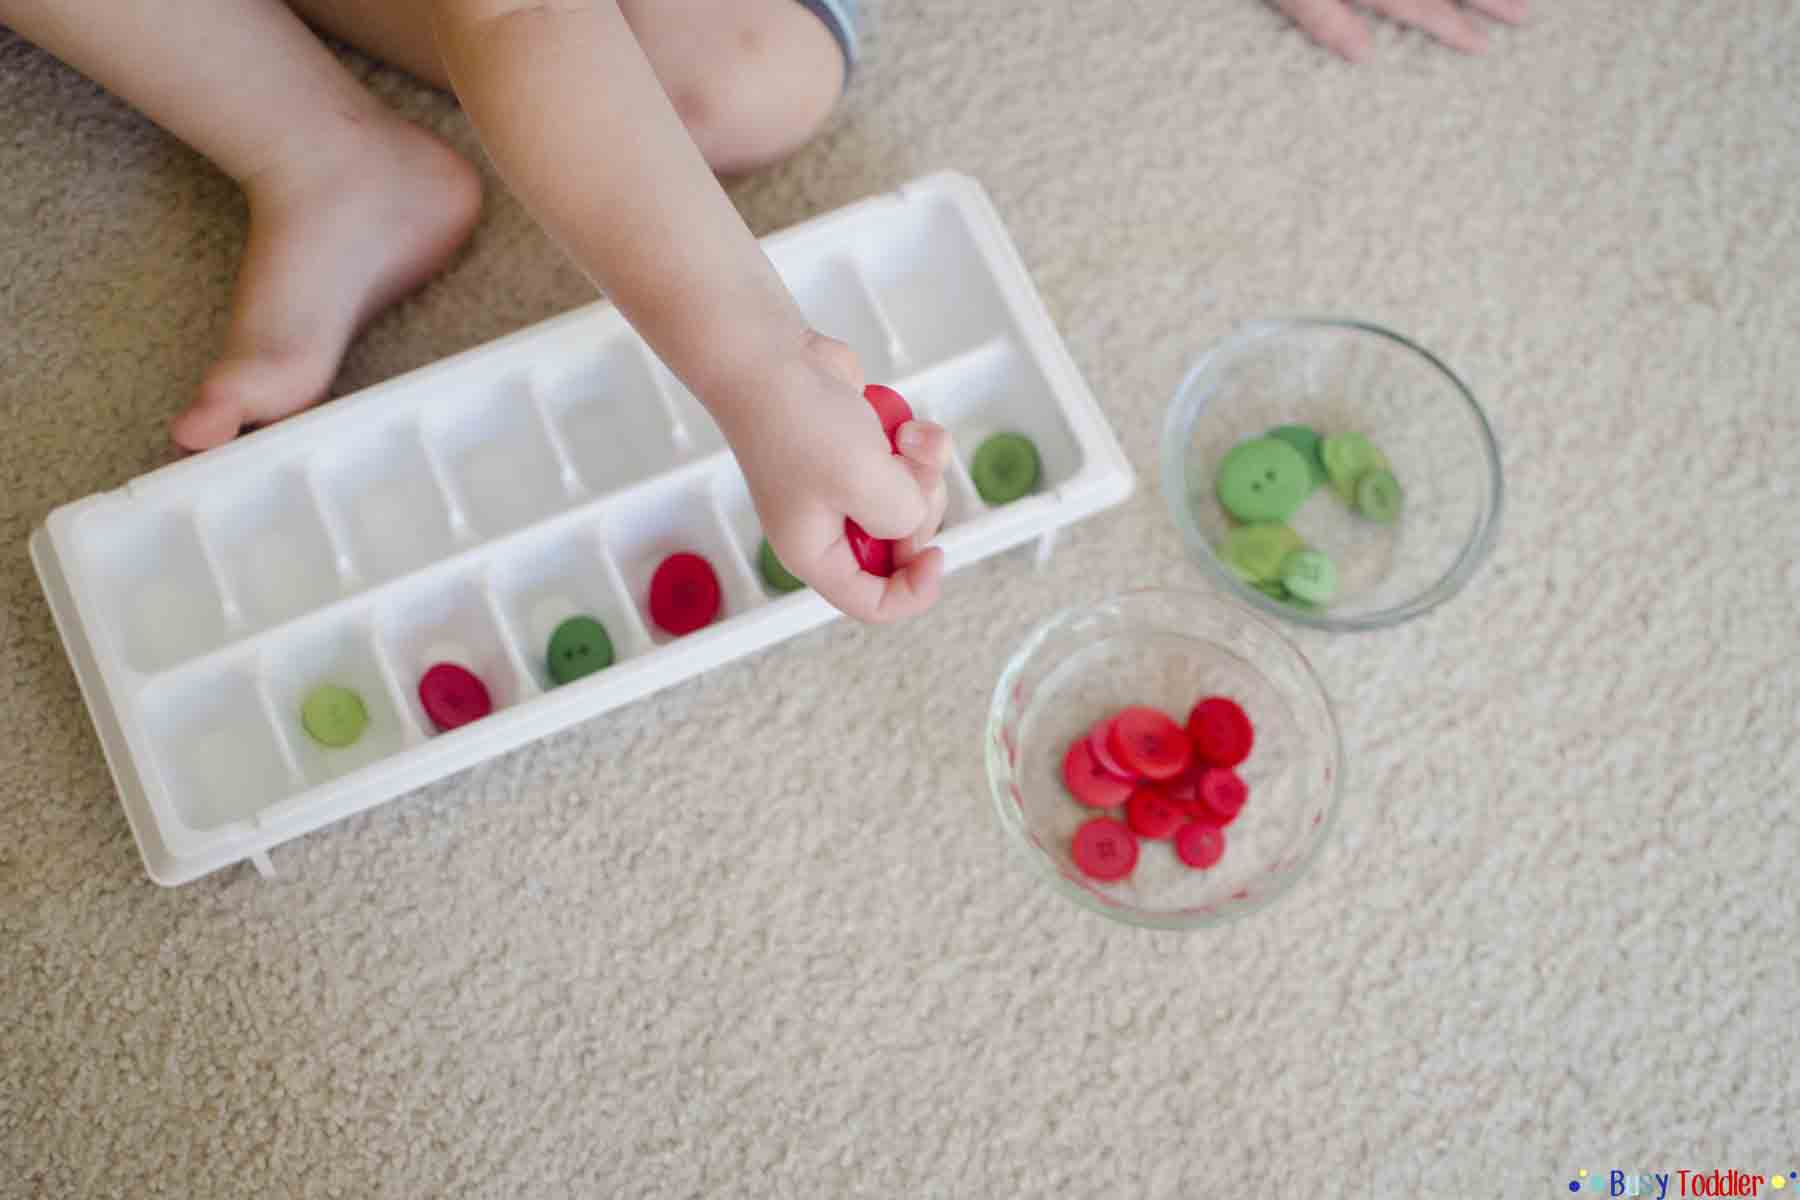 /INTRODUCING PATTERNS: Exposing toddlers and preschoolers to patterning in this simple indoor activity using buttons.